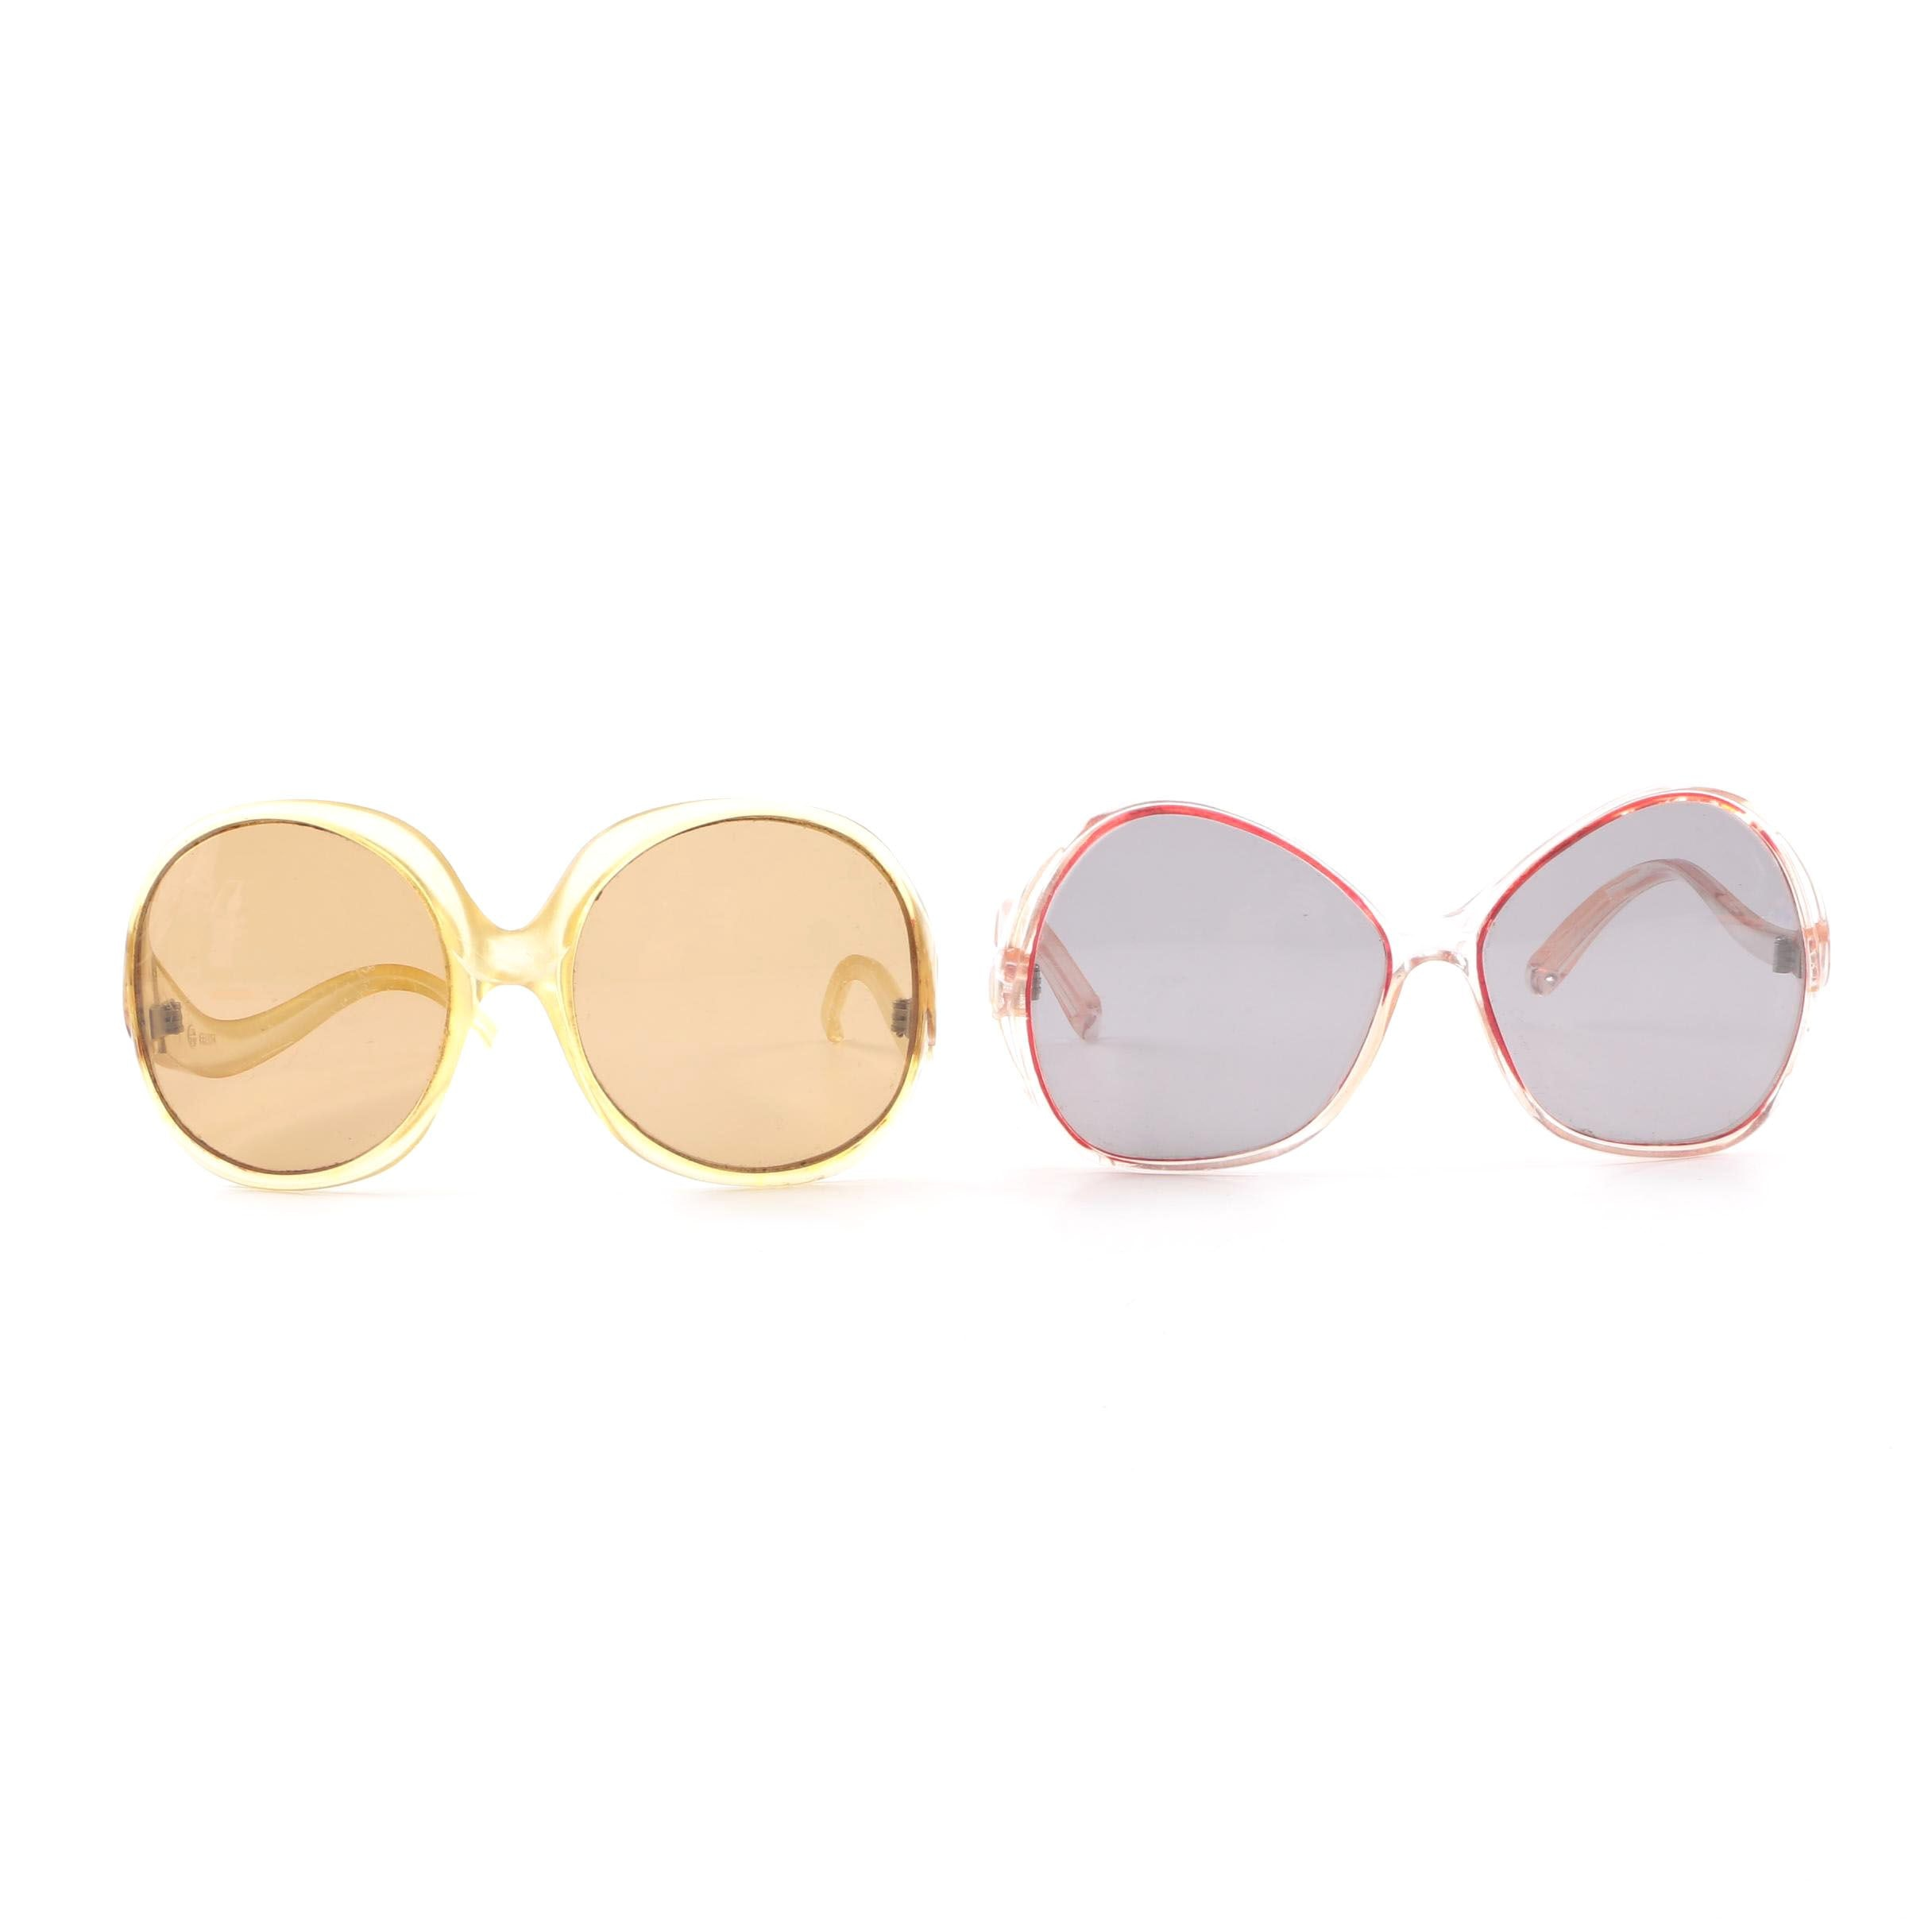 Vintage Round and Butterfly Style Sunglasses